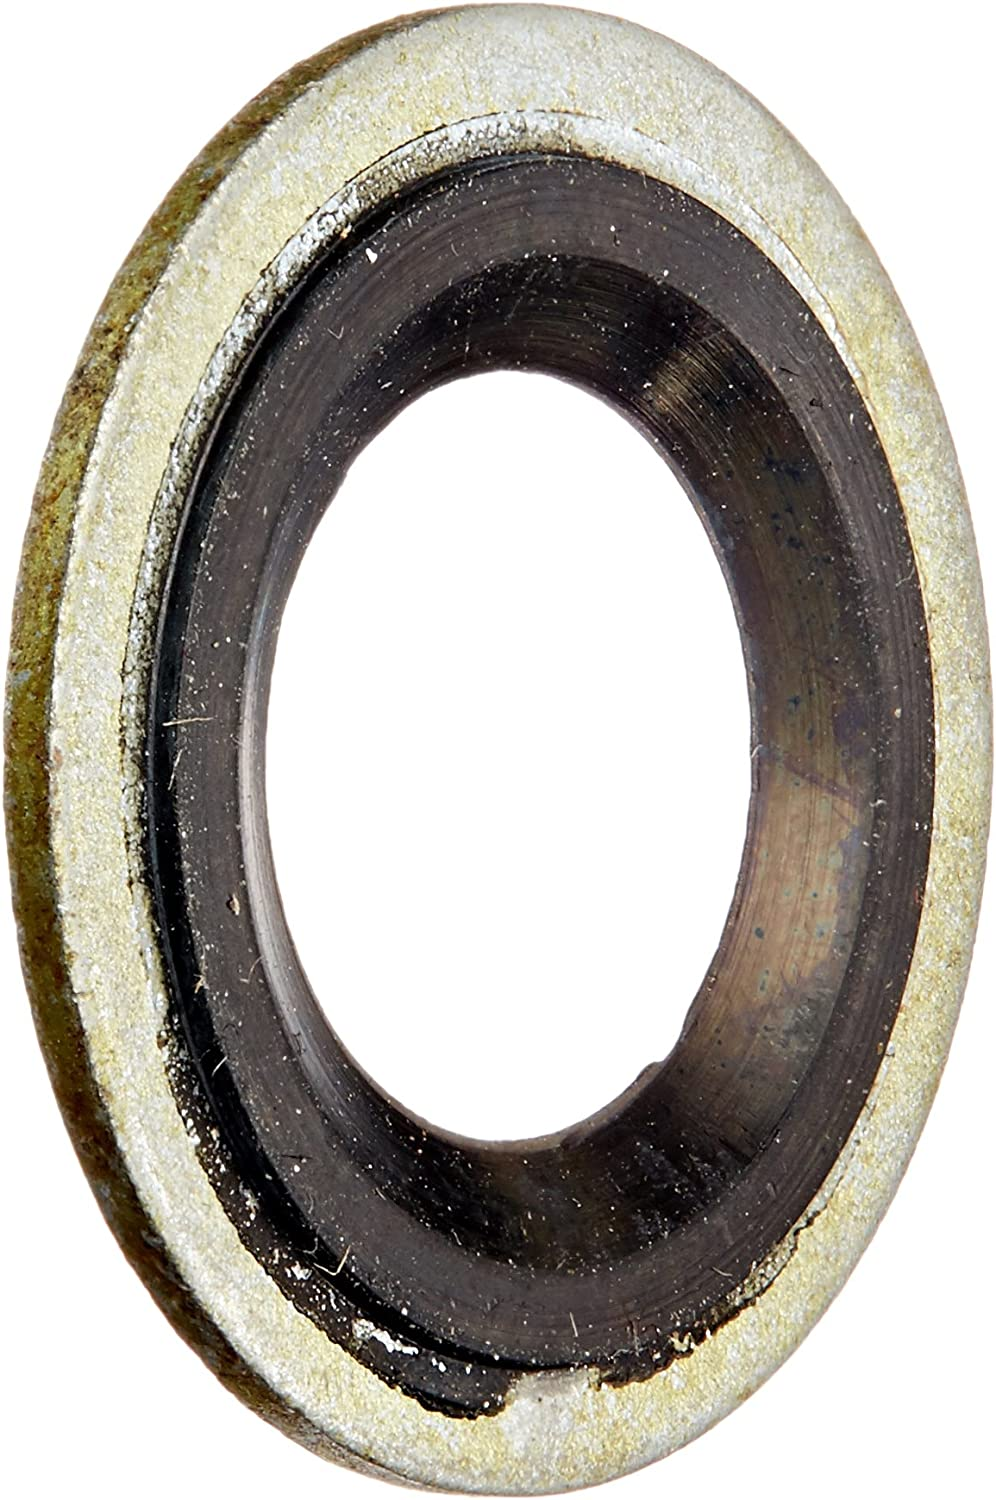 """100 Count Buy Auto Supply # BAS03500 65274 GM 14079550 24.7mm O.D // 11.5mm I.D M12 1//2/"""" Metal Rubber Oil Drain Plug Gasket Aftermarket Replacement fits 097-021 24571185"""